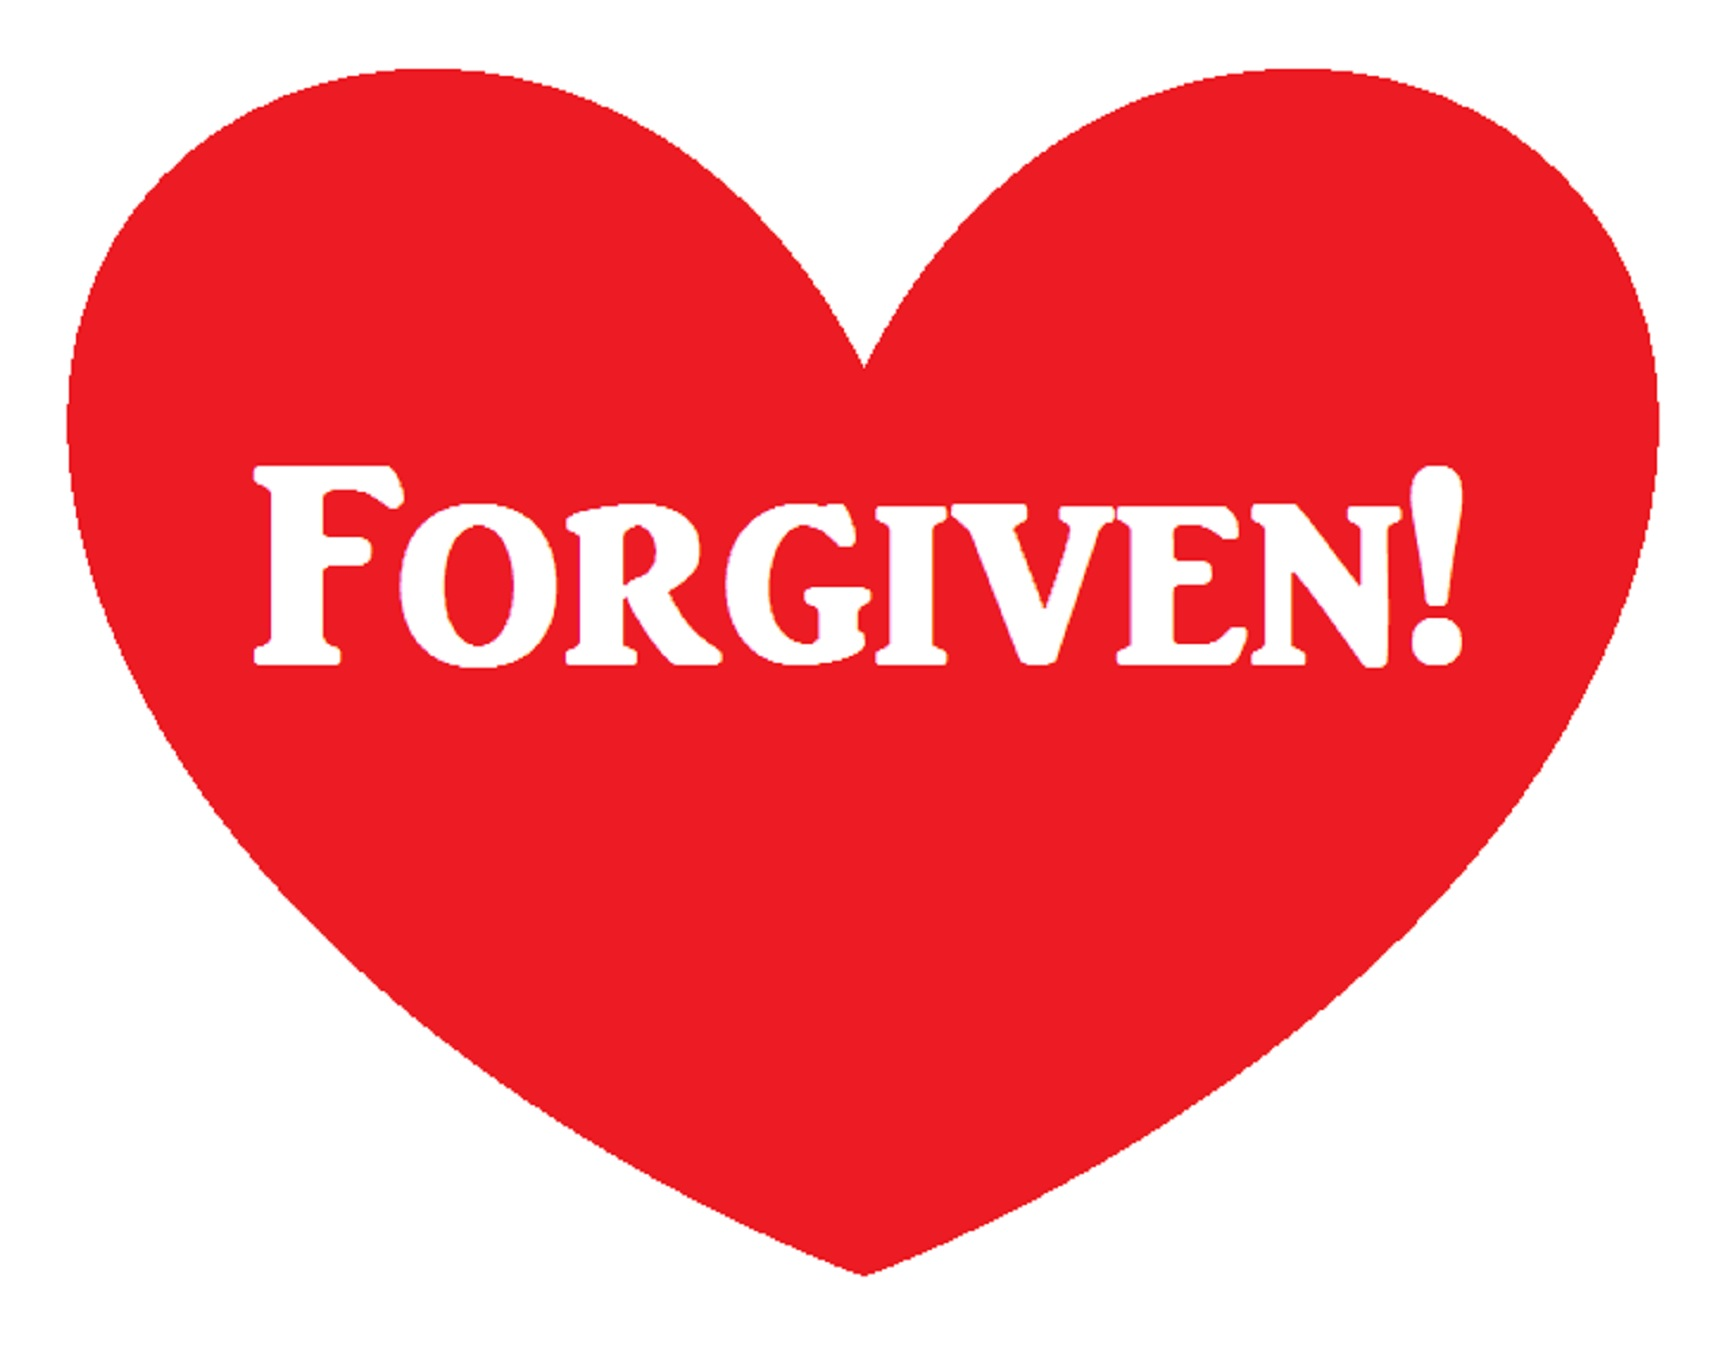 Forgiven Created by me with Microsoft Paint